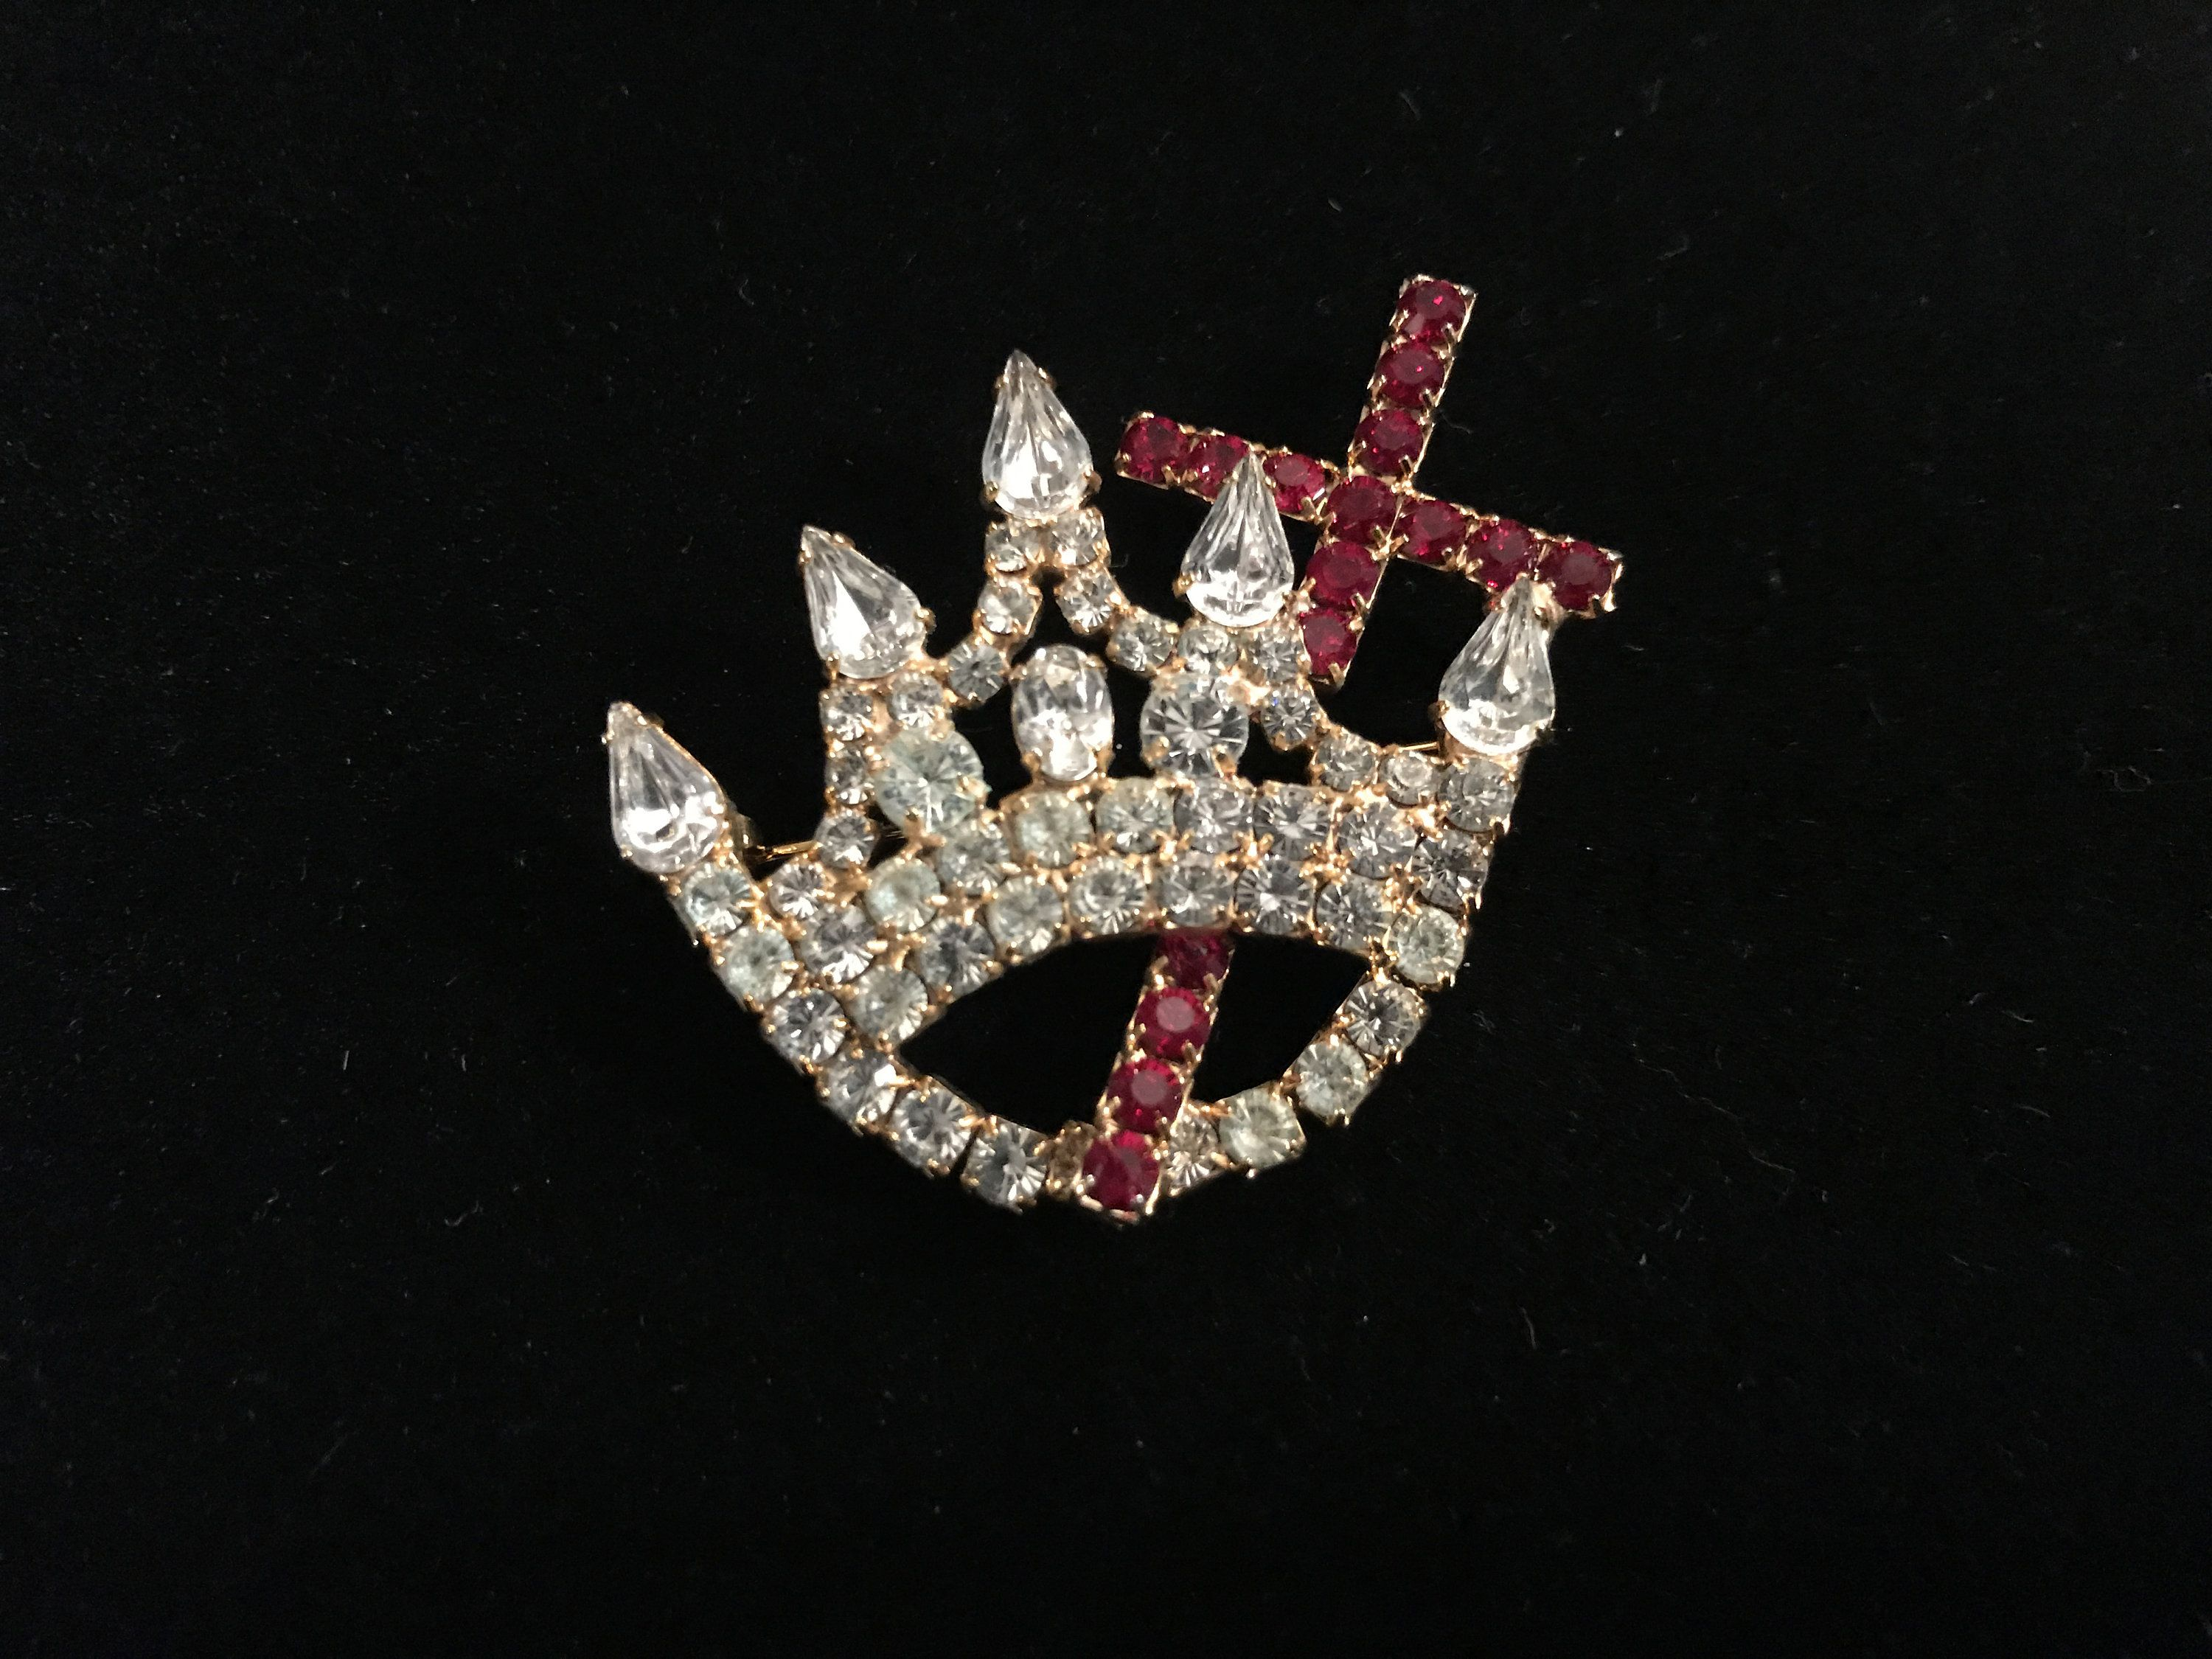 Cross & Crown! Vintage Rhinestone Tiara Crown and Cross Brooch Pin Unsigned- Free Shipping to USA #vintagerhinestone